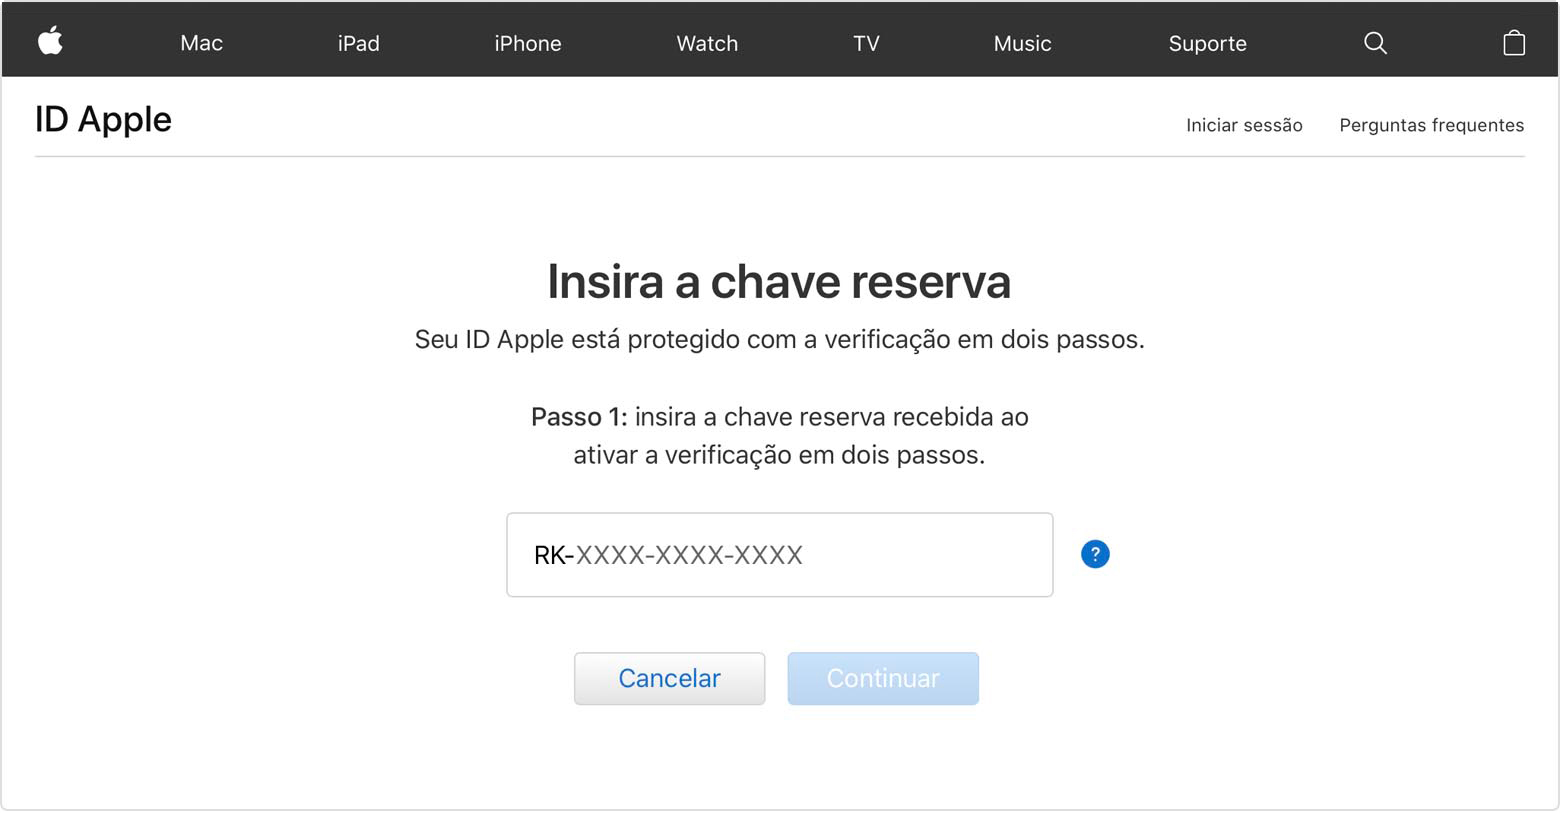 Tela do ID Apple mostrando